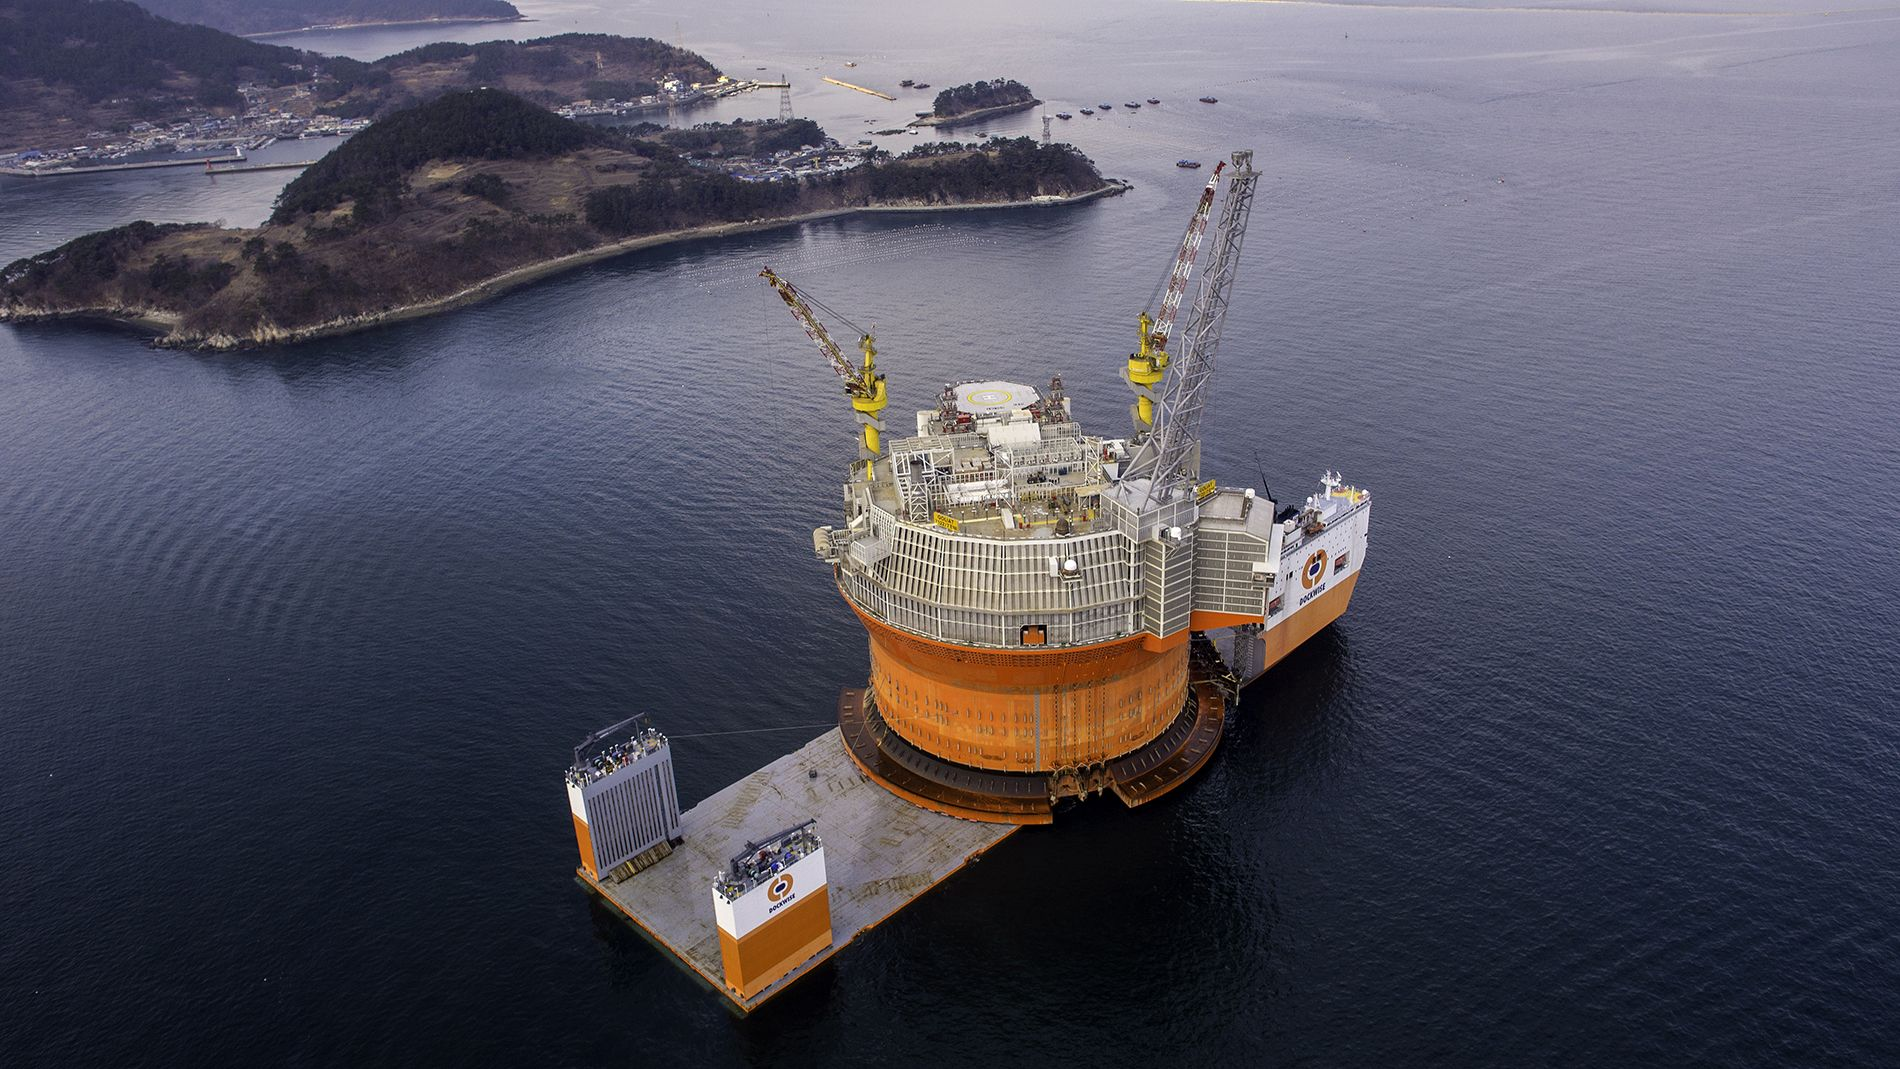 Here S The Largest Oil Rig Ever On Top Of The Largest Transport Ship Oil Rig Oil Platform Drilling Rig